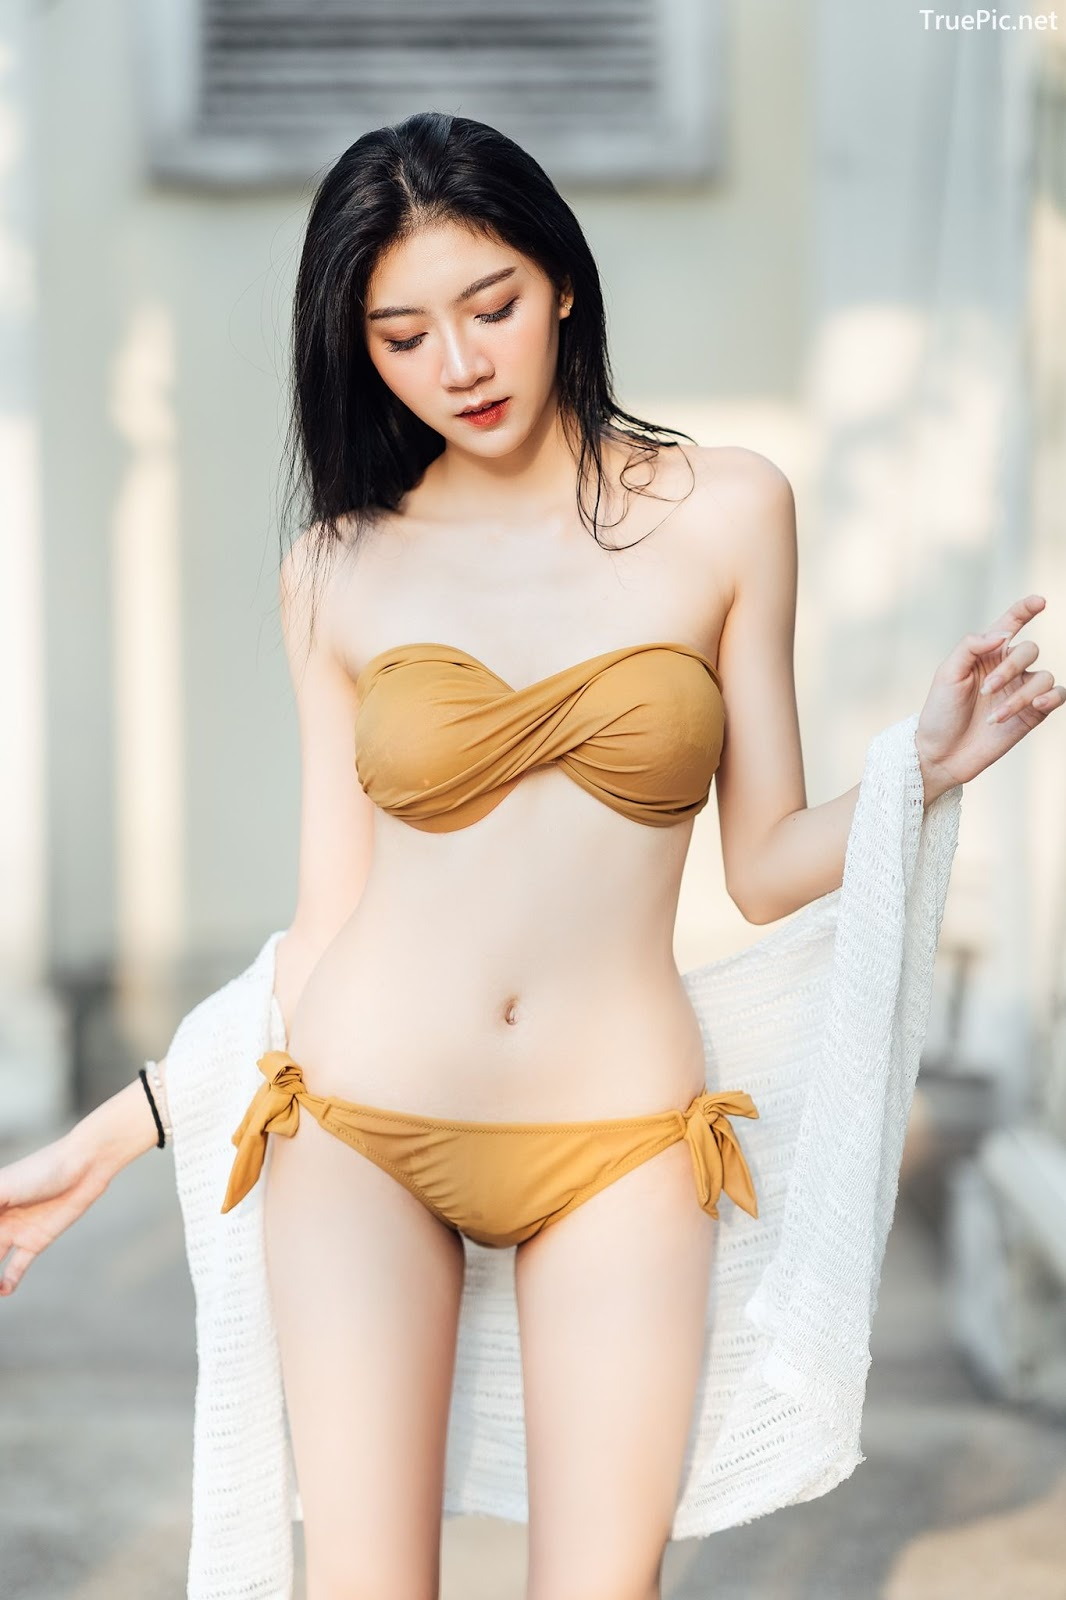 Image Thailand Model - Sasi Ngiunwan - Let's Summer Chilling - TruePic.net - Picture-7